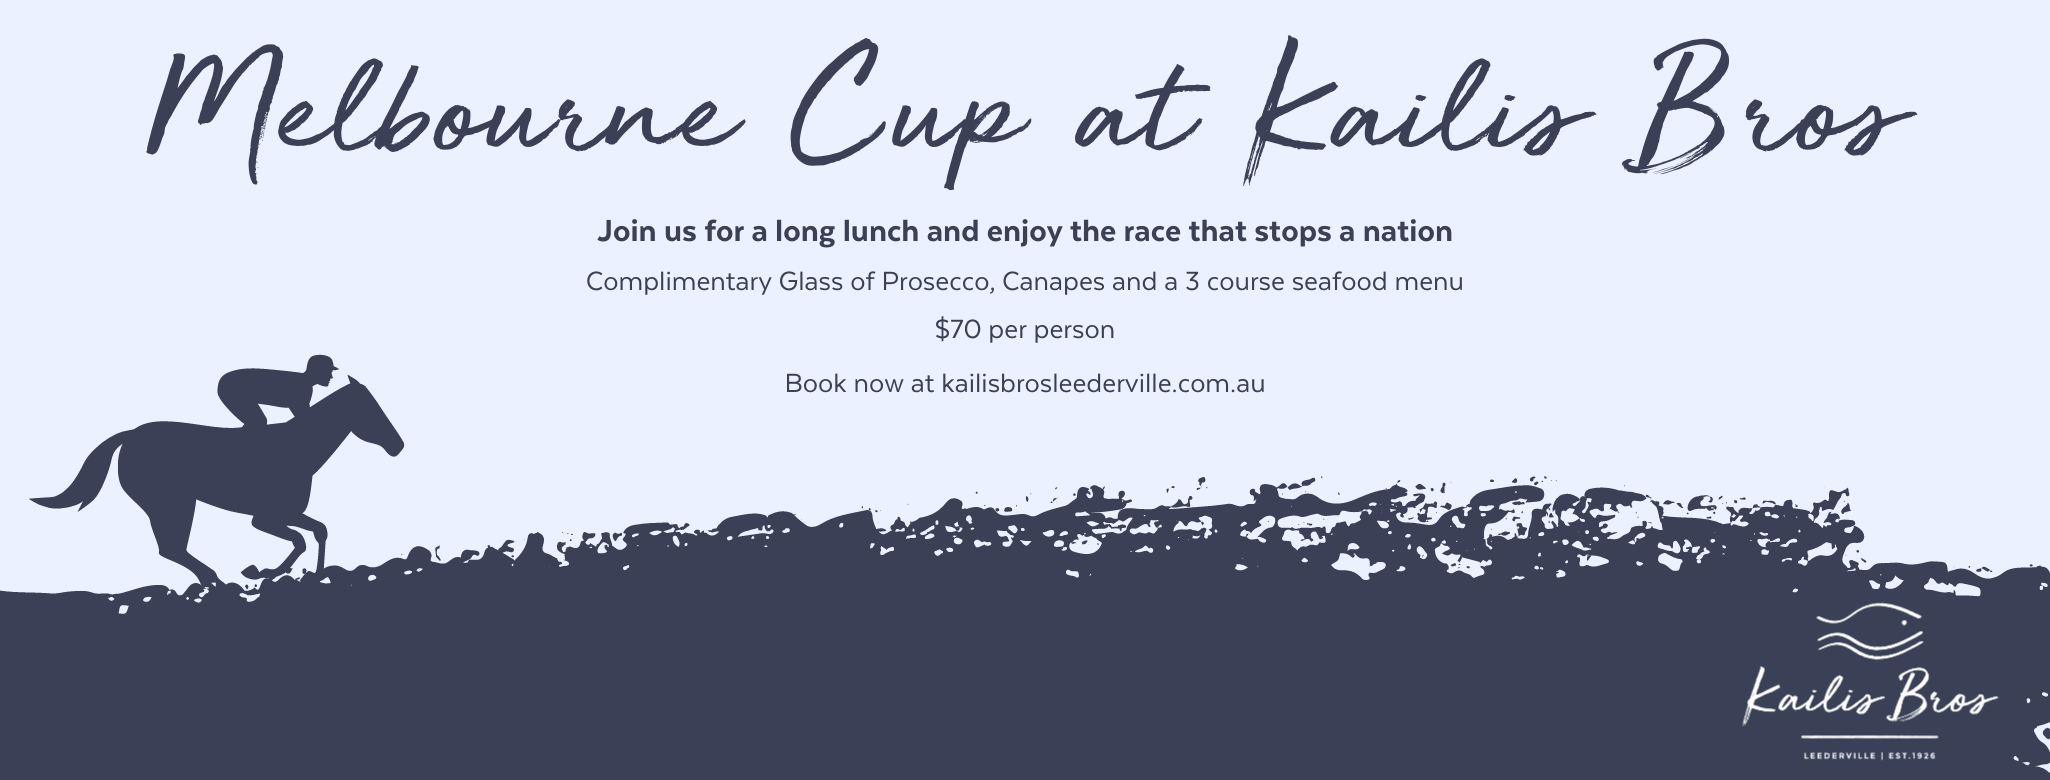 Melbourne Cup at Kailis Bros